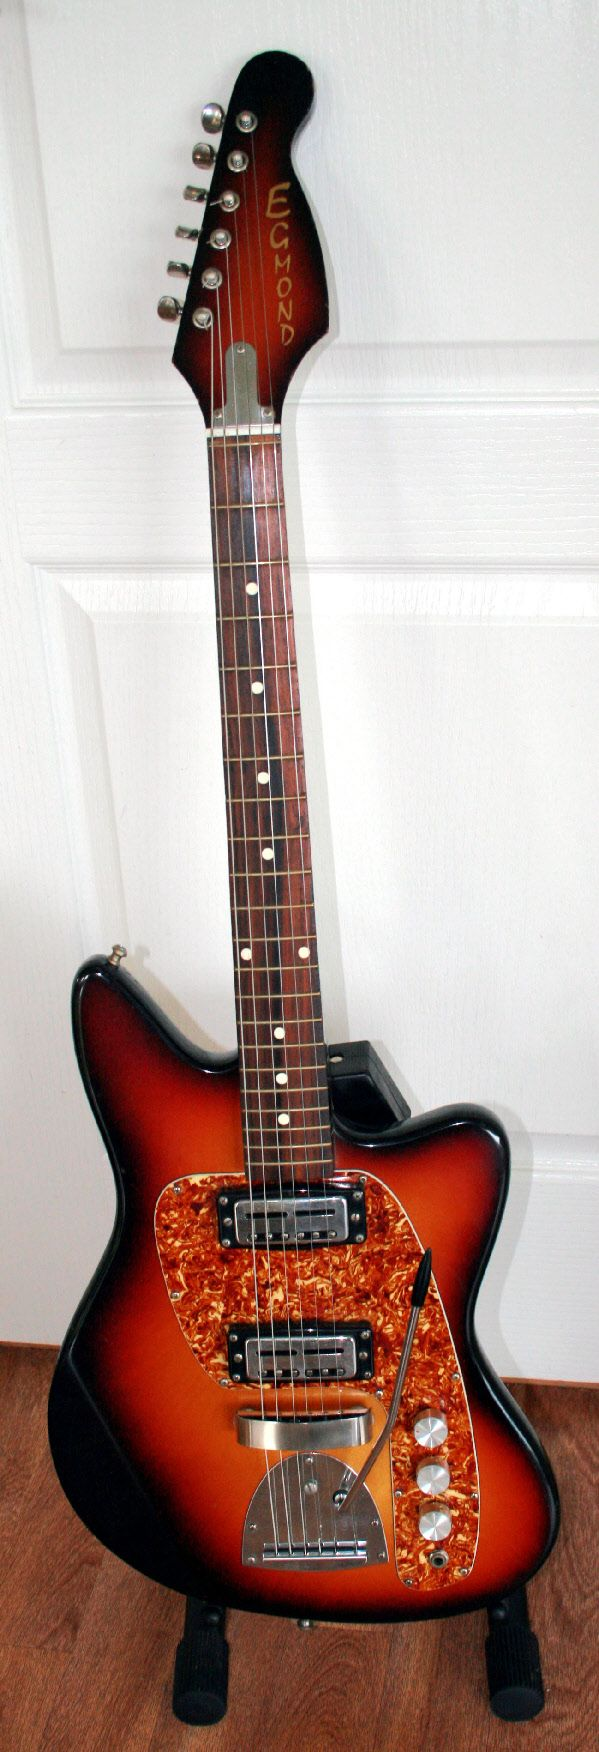 Egmond Guitars Were Made In Holland Very Similar In Quality To Harmony And Kay Brands In The U S Many British Invasion Bands Learned To Pla Basgitaren Gitaar